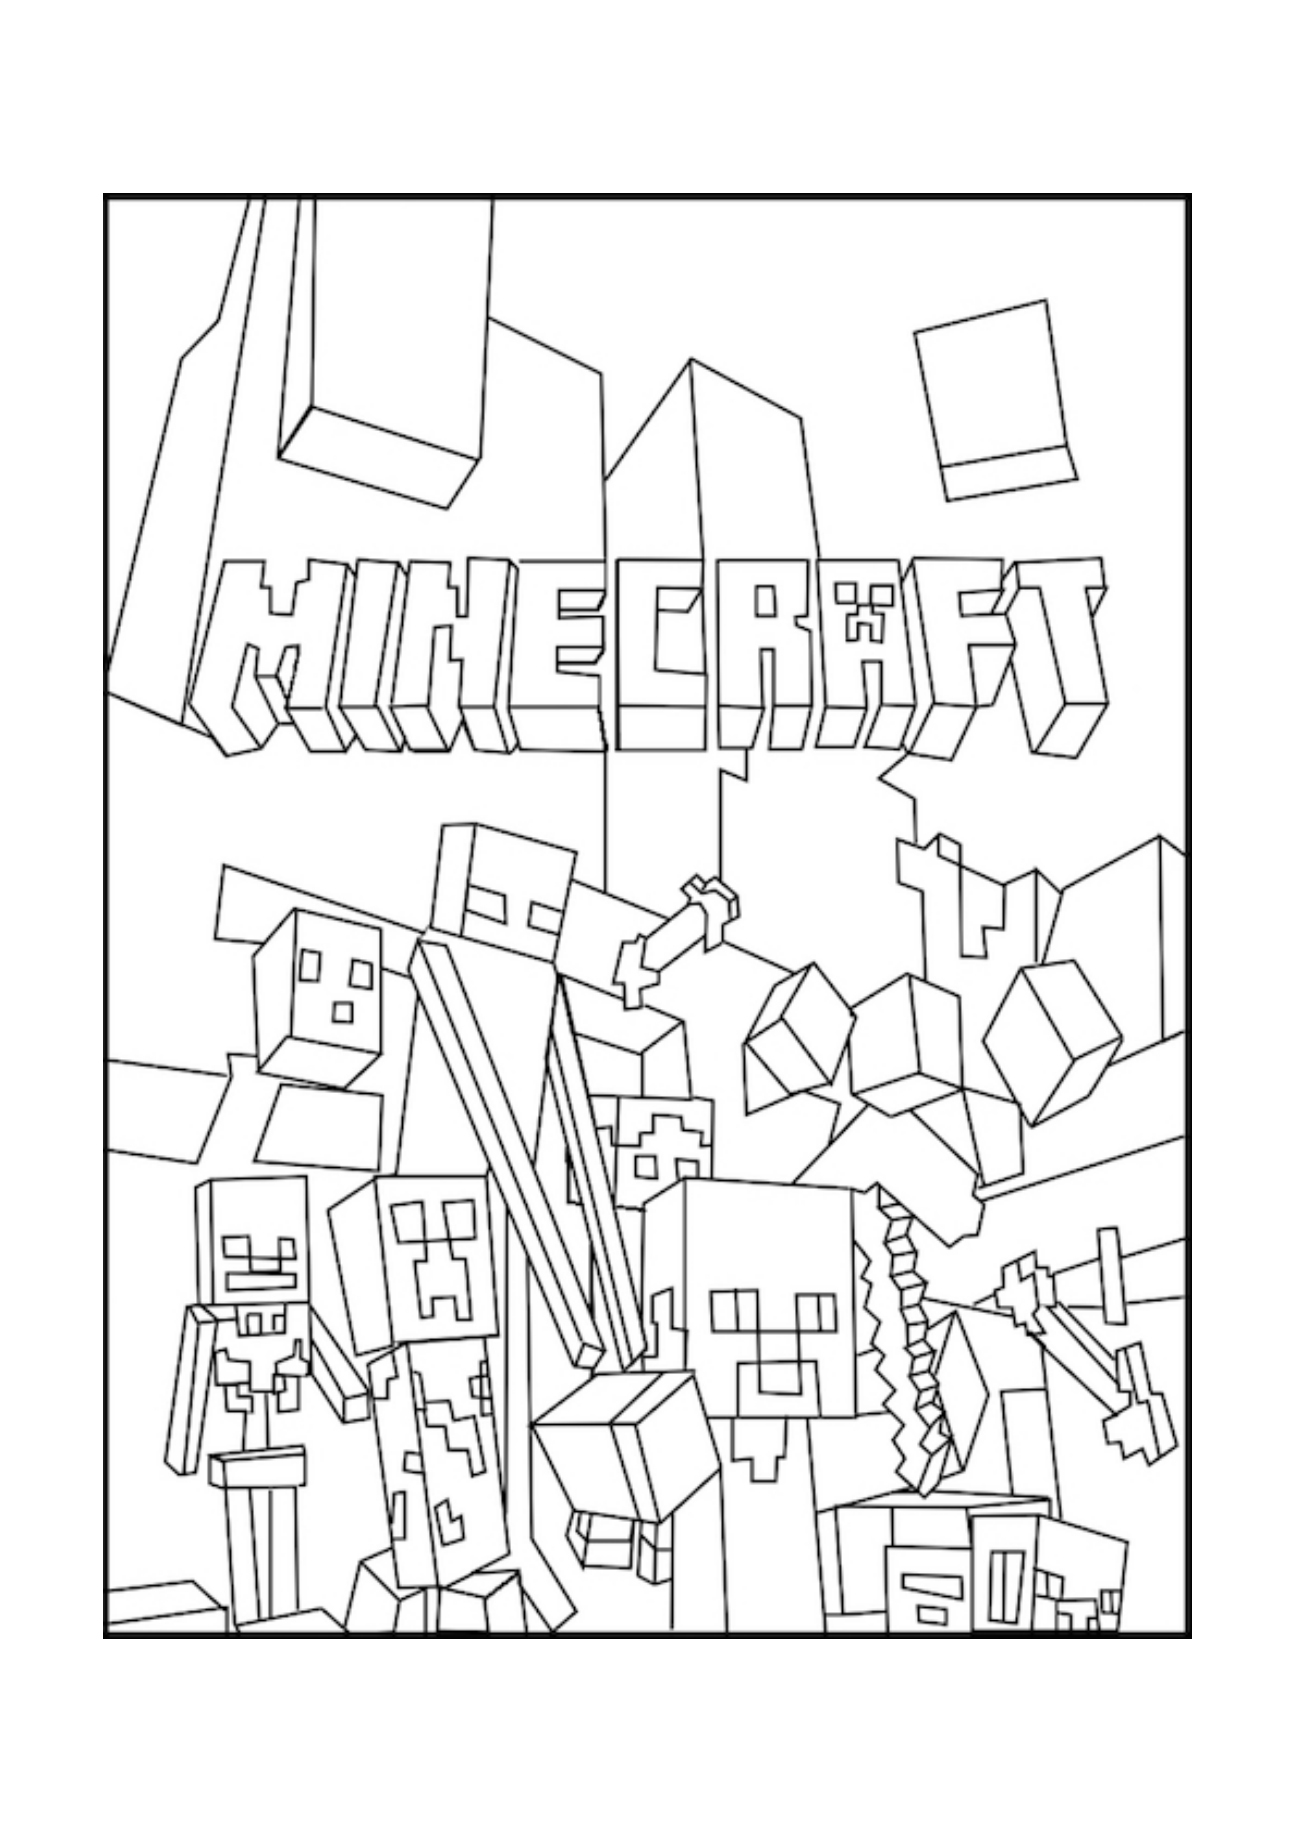 coloring minecraft pages minecraft coloring pages enderman at getcoloringscom pages minecraft coloring